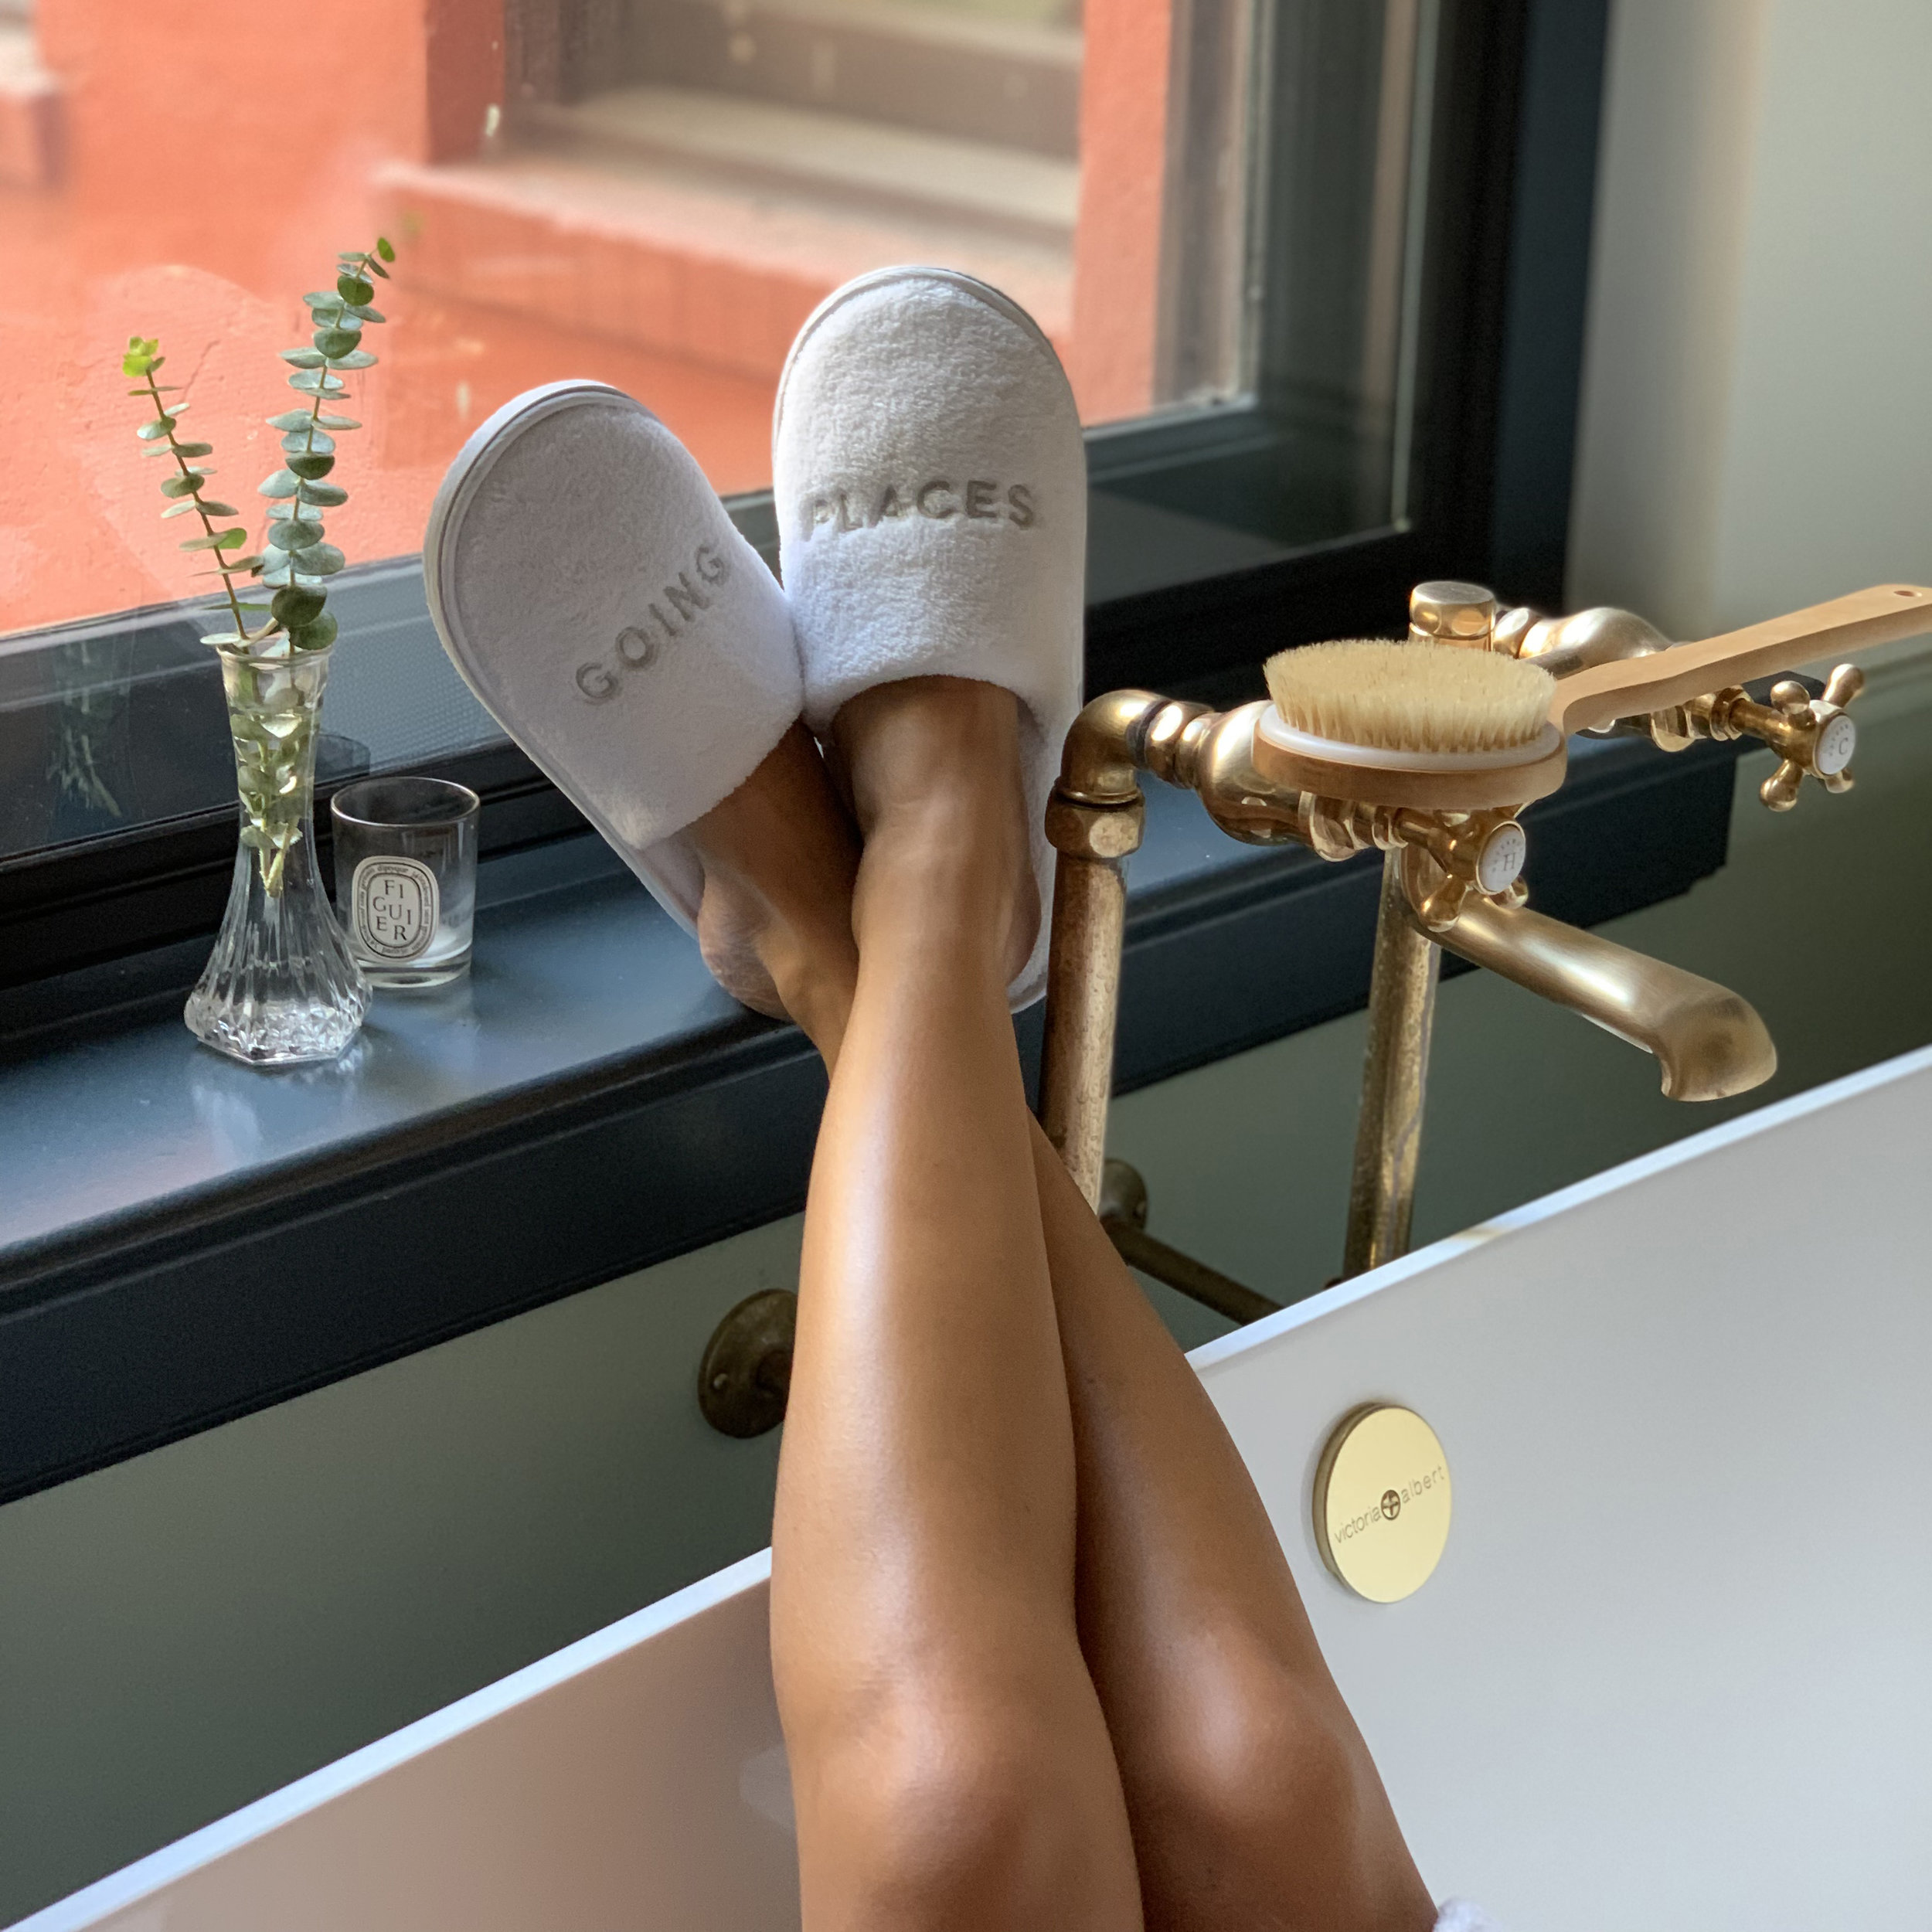 Going Places Slippers - You don't have to go out to go places—it's a state of mind. Whether you're relaxing at home or kicking back in your hotel room after a day spent exploring, these plush slippers bring the comfort.